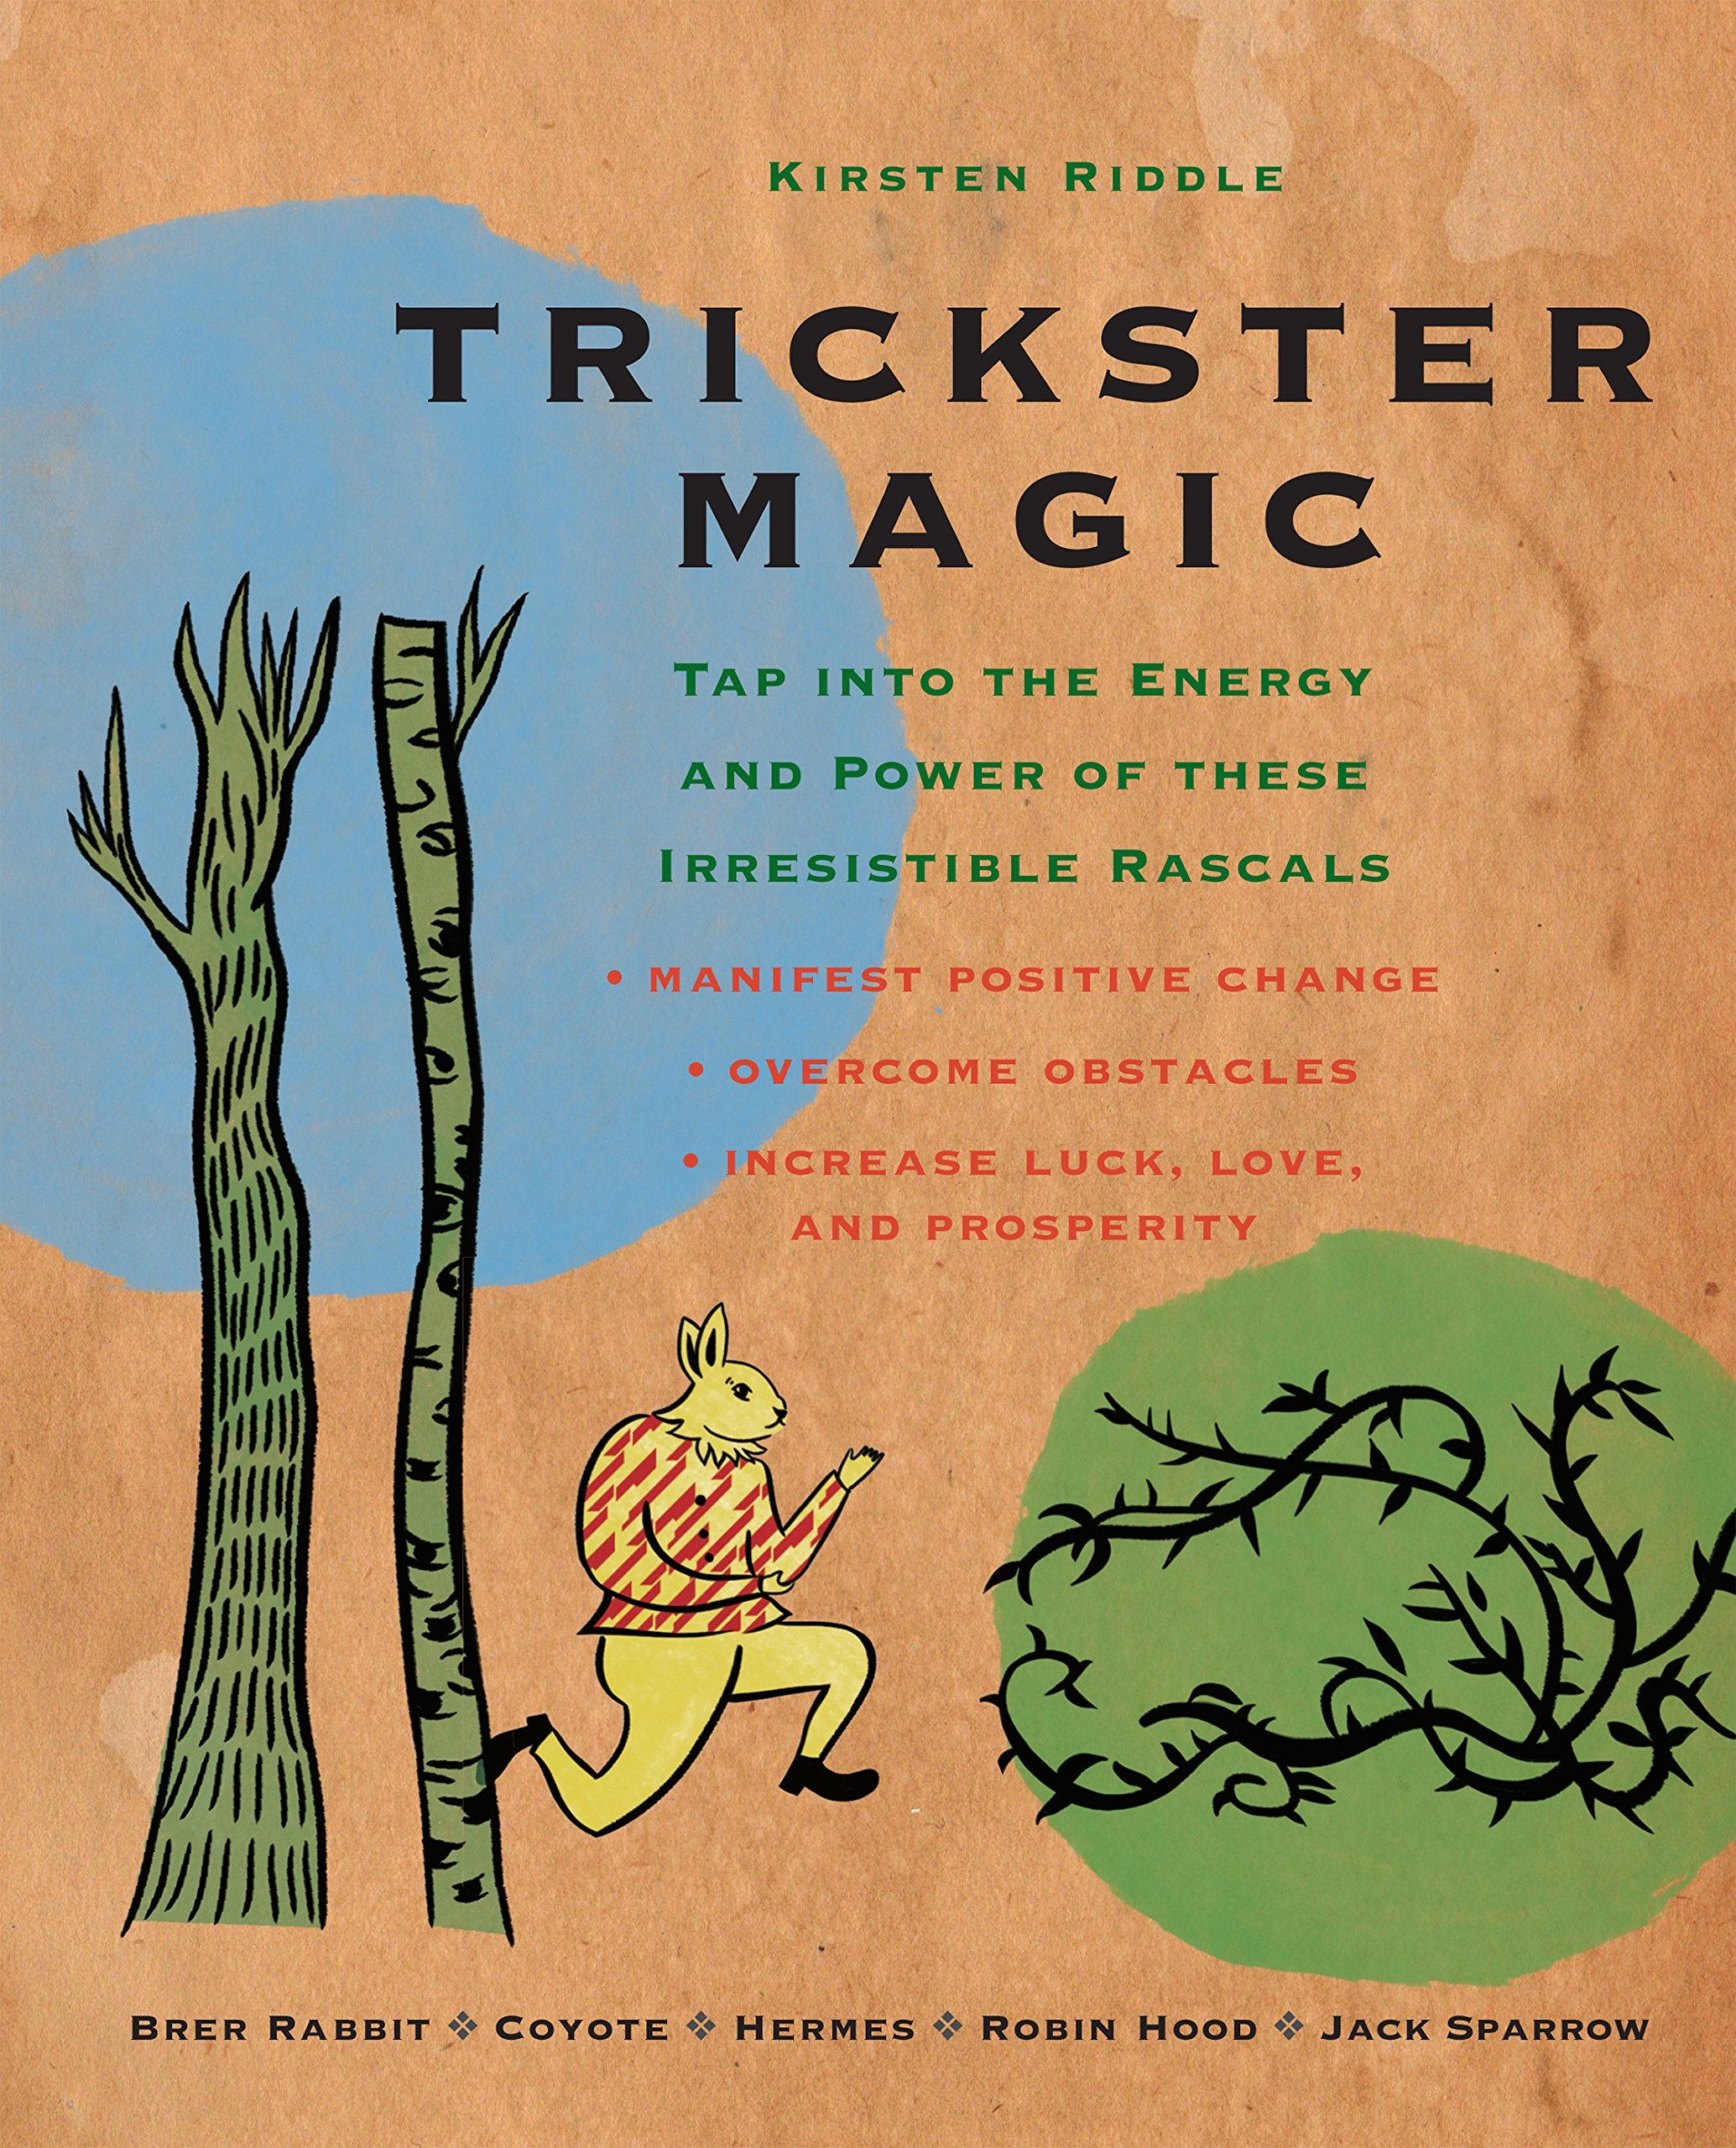 Amazon trickster magic tap into the energy and power of amazon trickster magic tap into the energy and power of these irresistible rascals 9781782492641 kirsten riddle books fandeluxe Choice Image